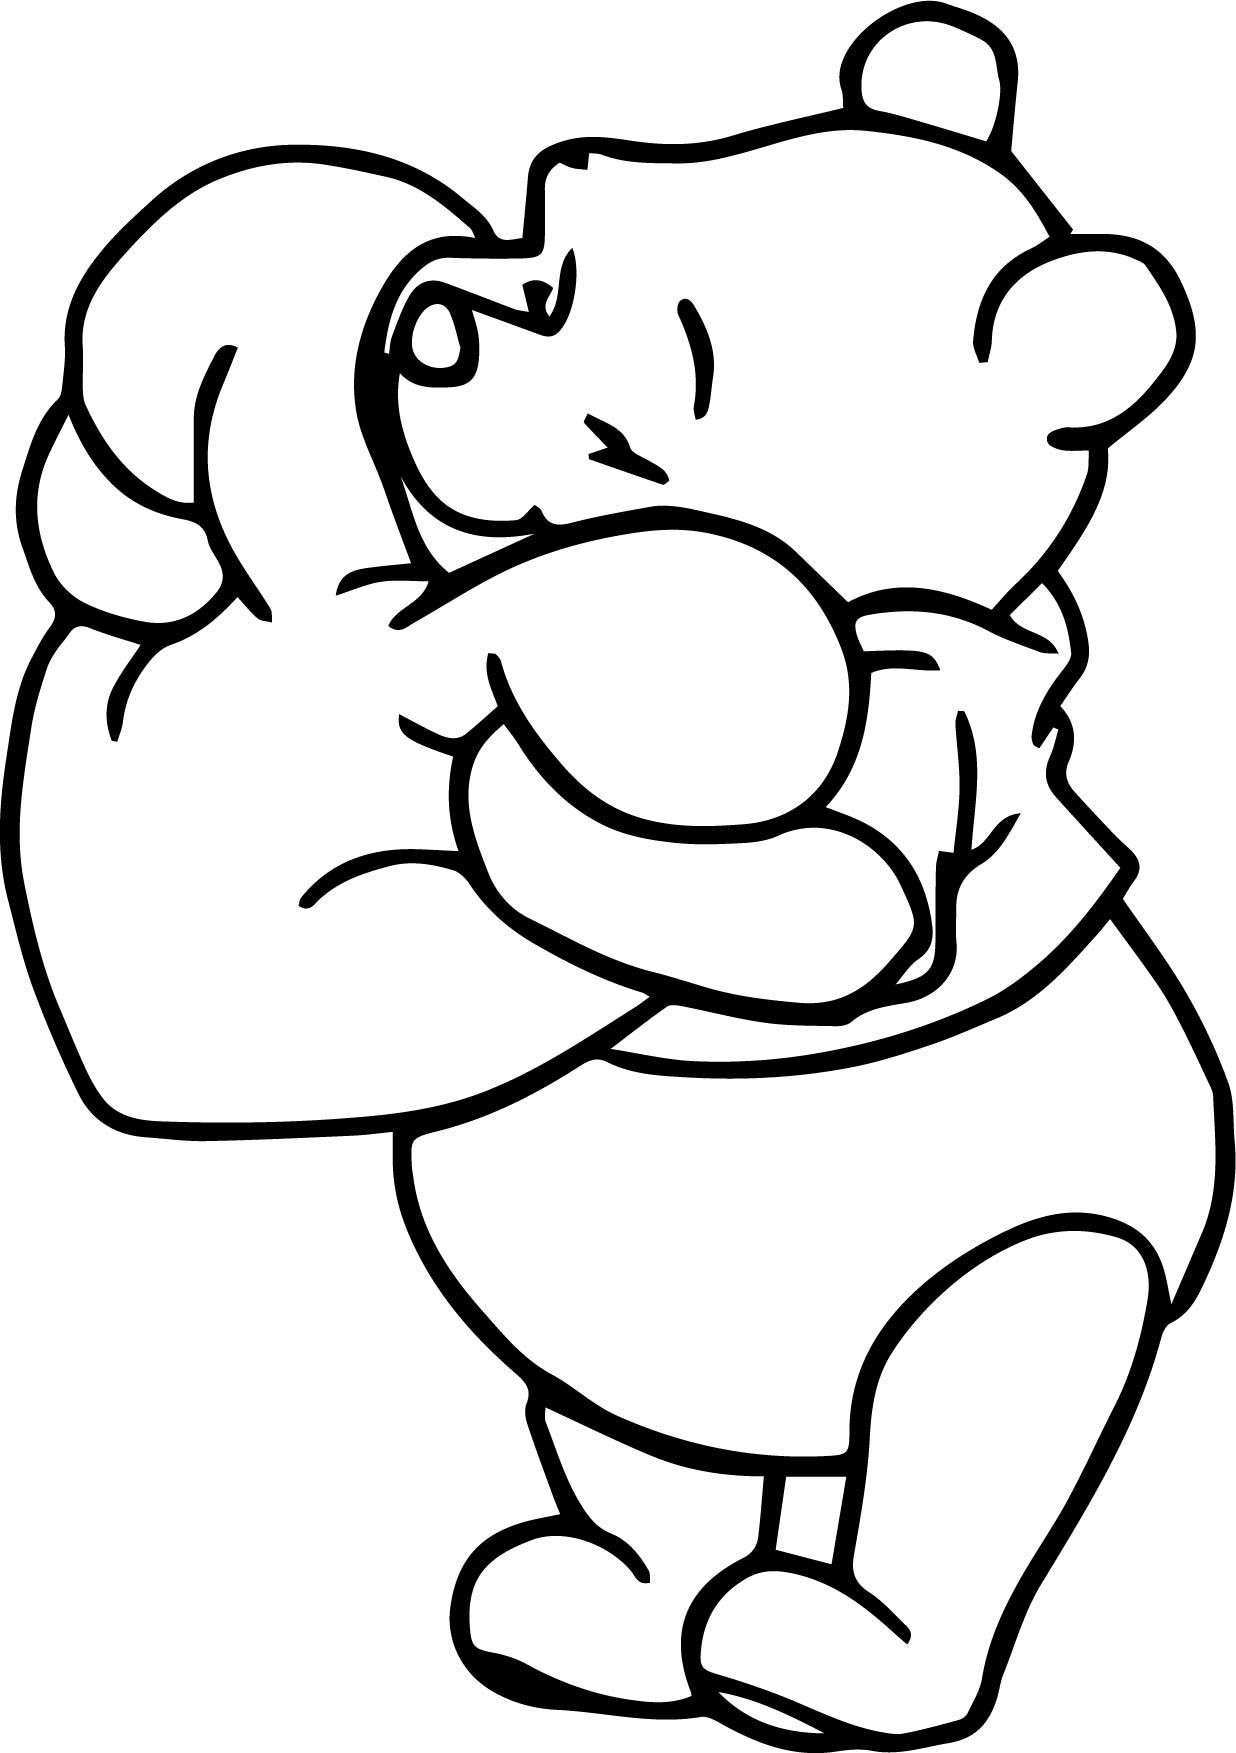 Winnie The Pooh Coloring Pages Love Coloring Pages Winnie The